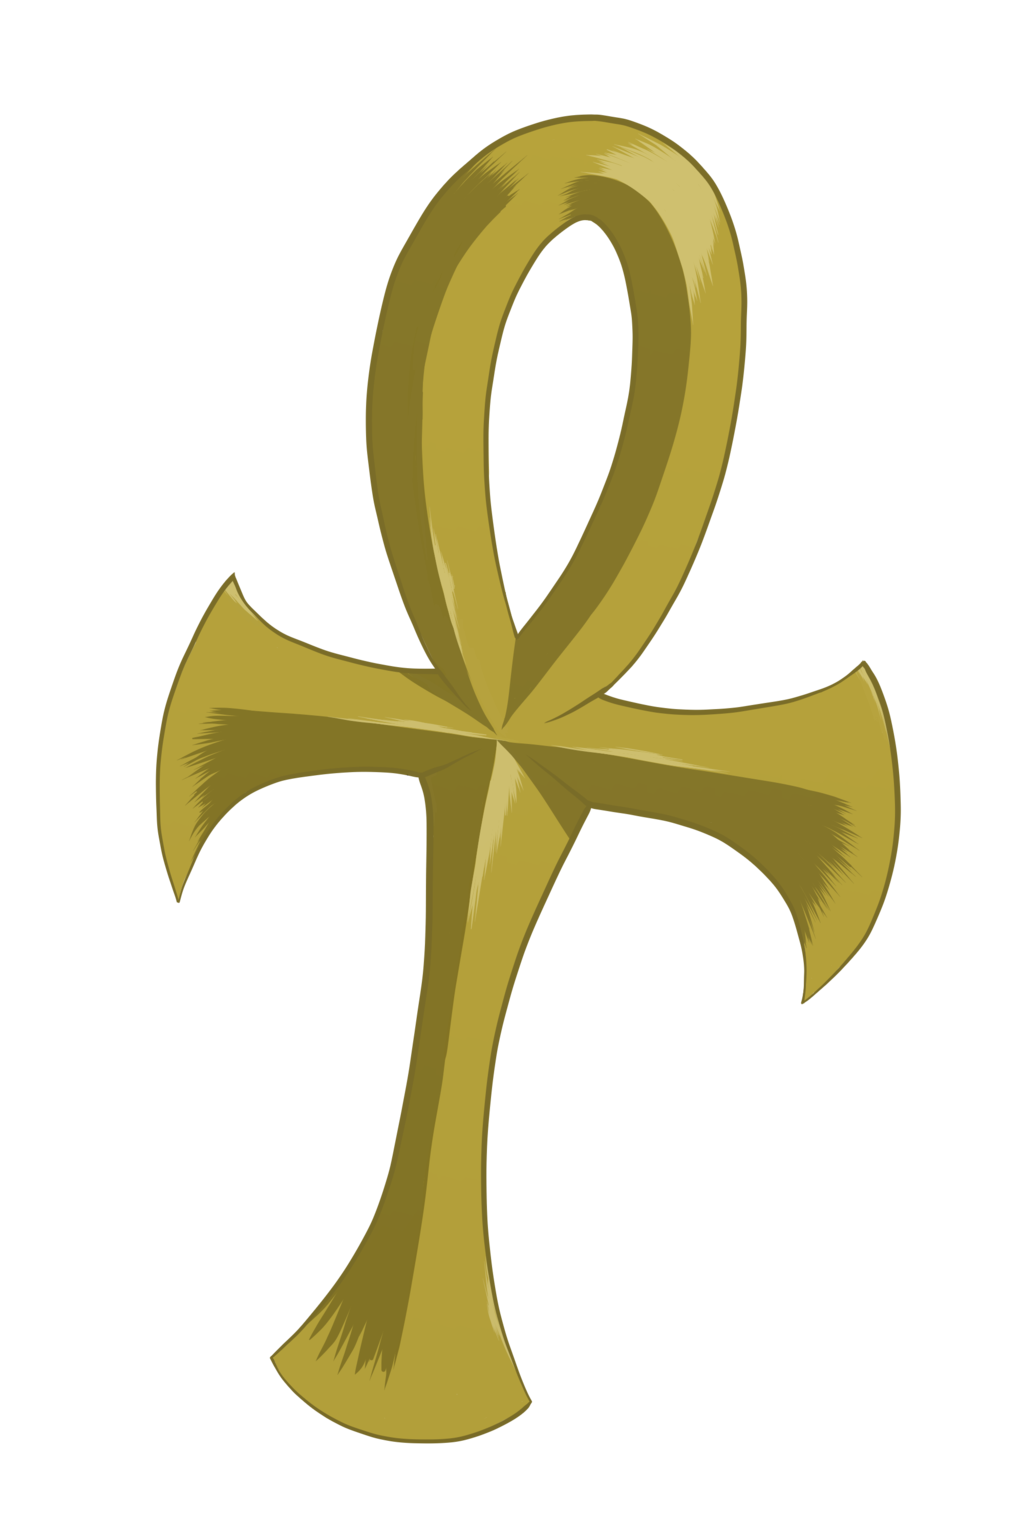 Ankh transparent. By ixbalam on deviantart banner royalty free stock